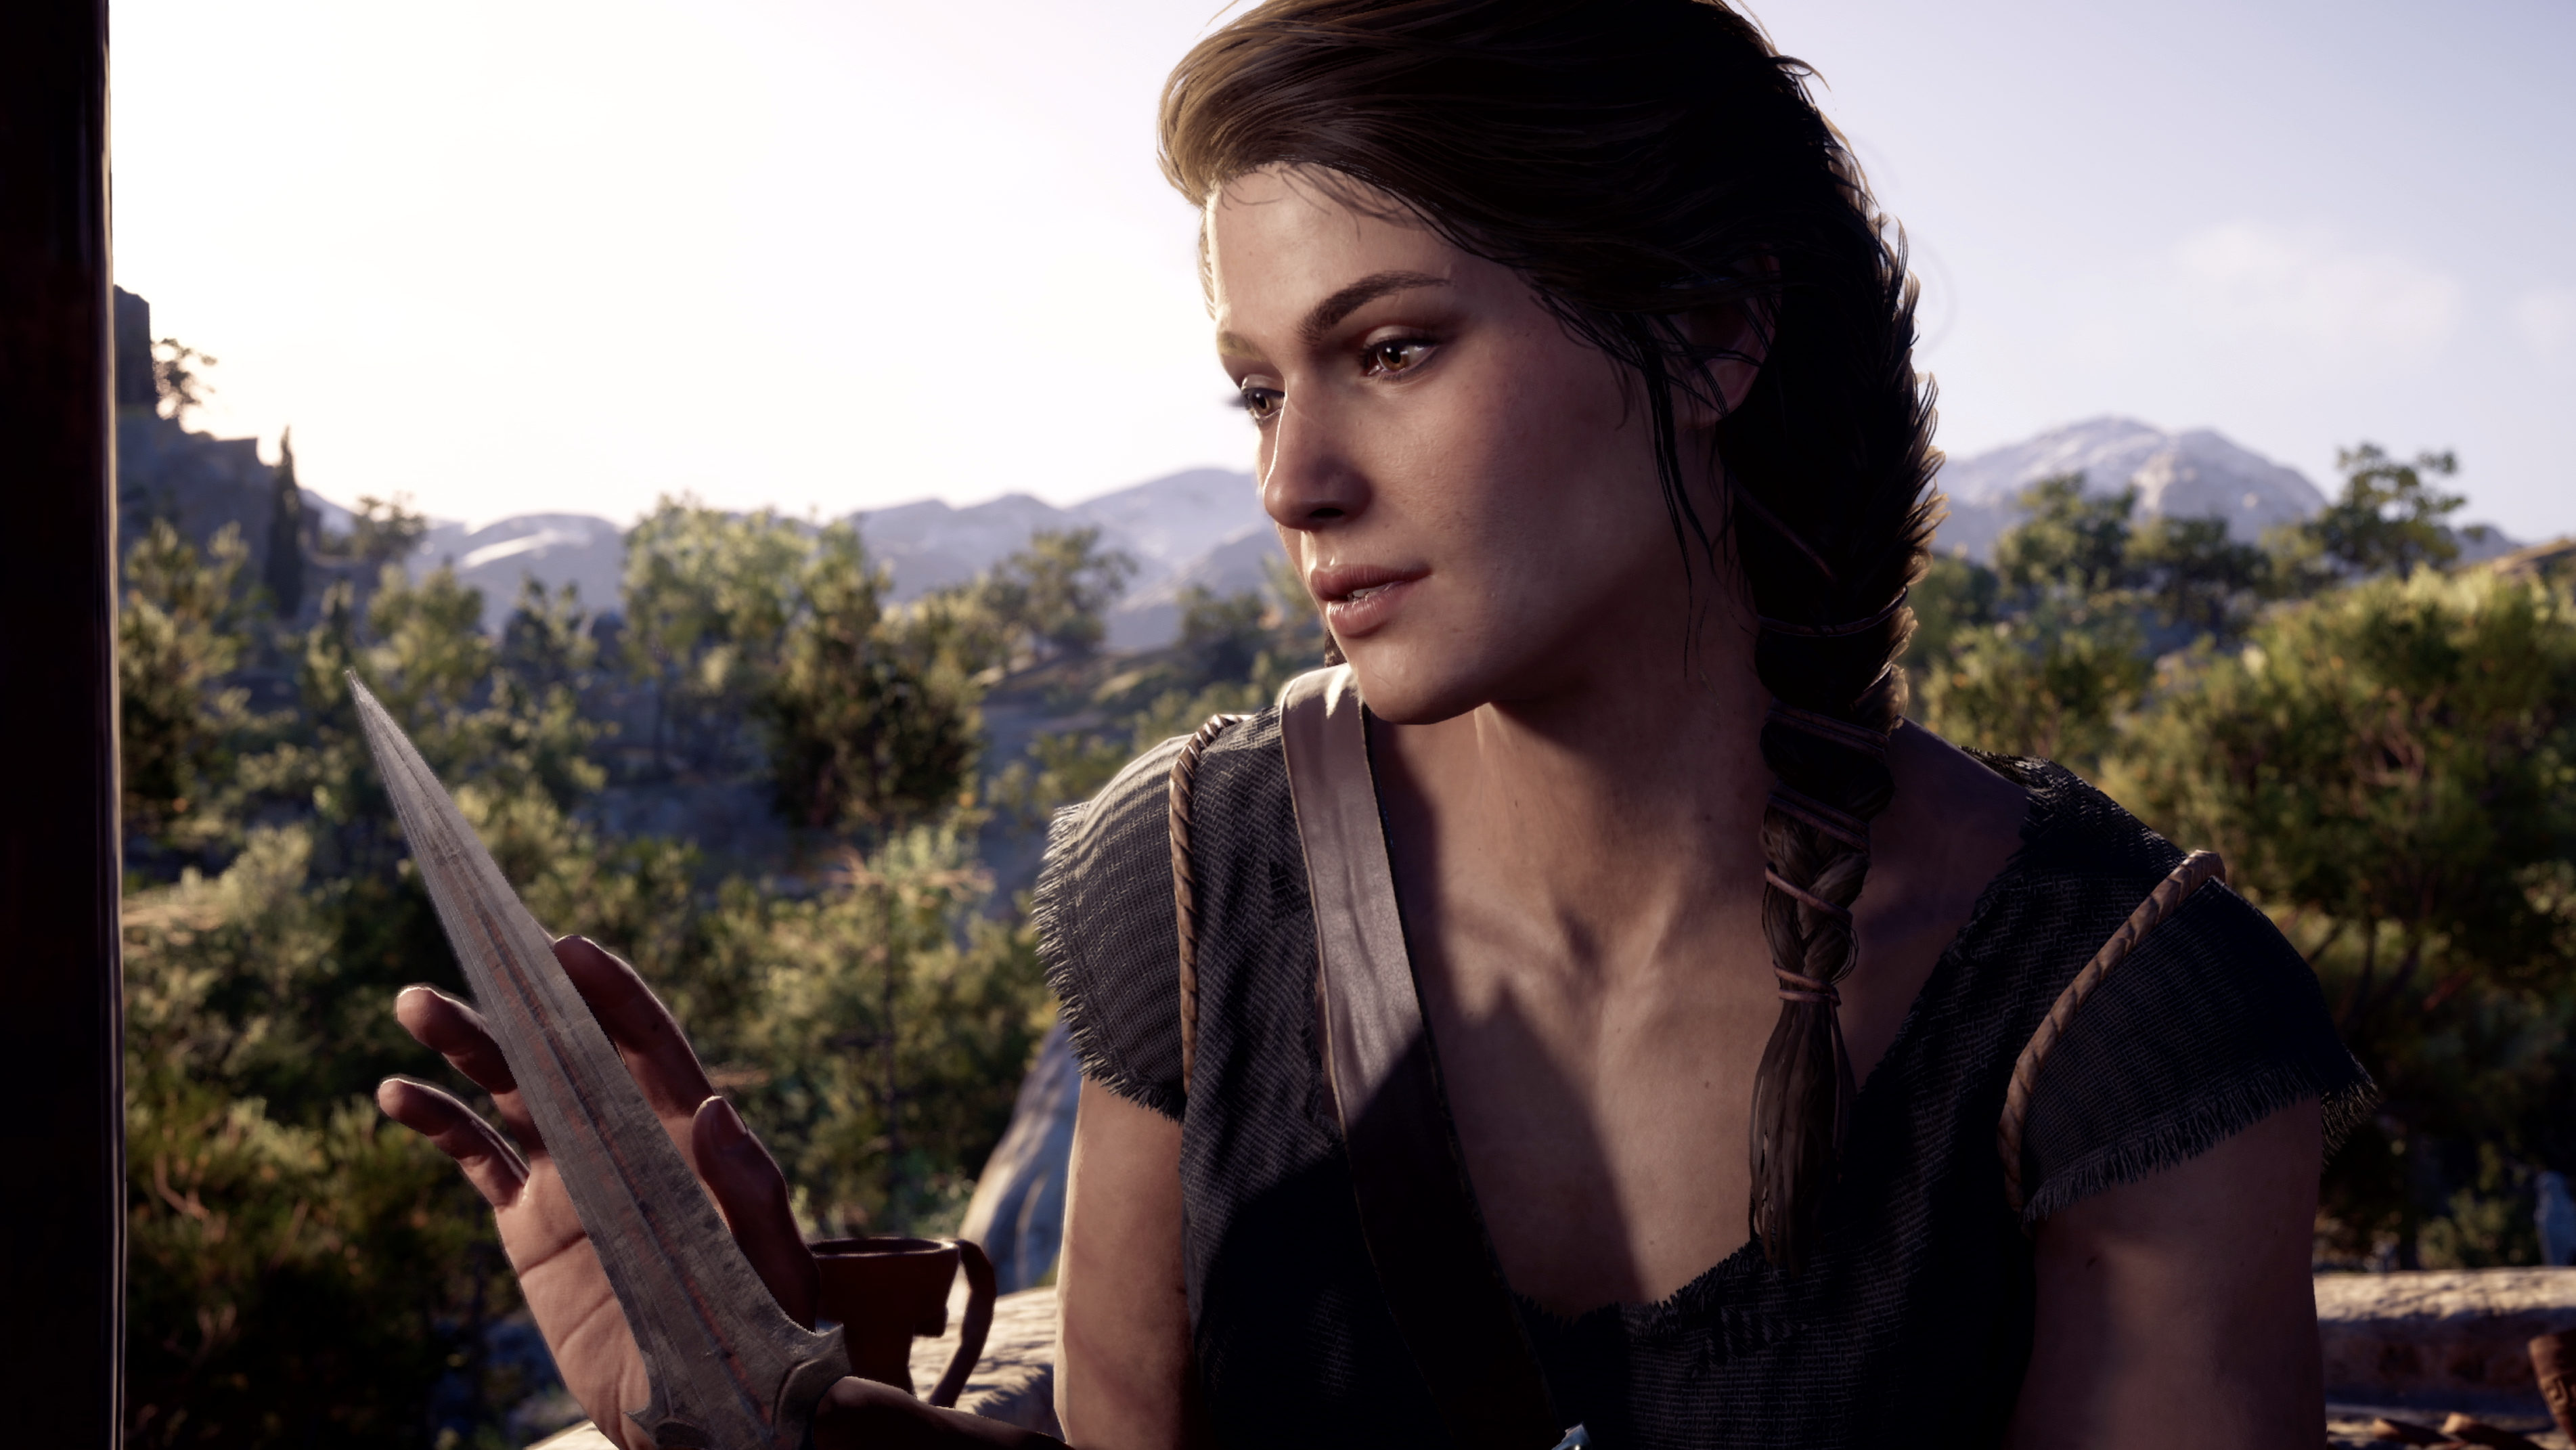 In Assassin's Creed Odyssey, Kassandra is better than Alexios